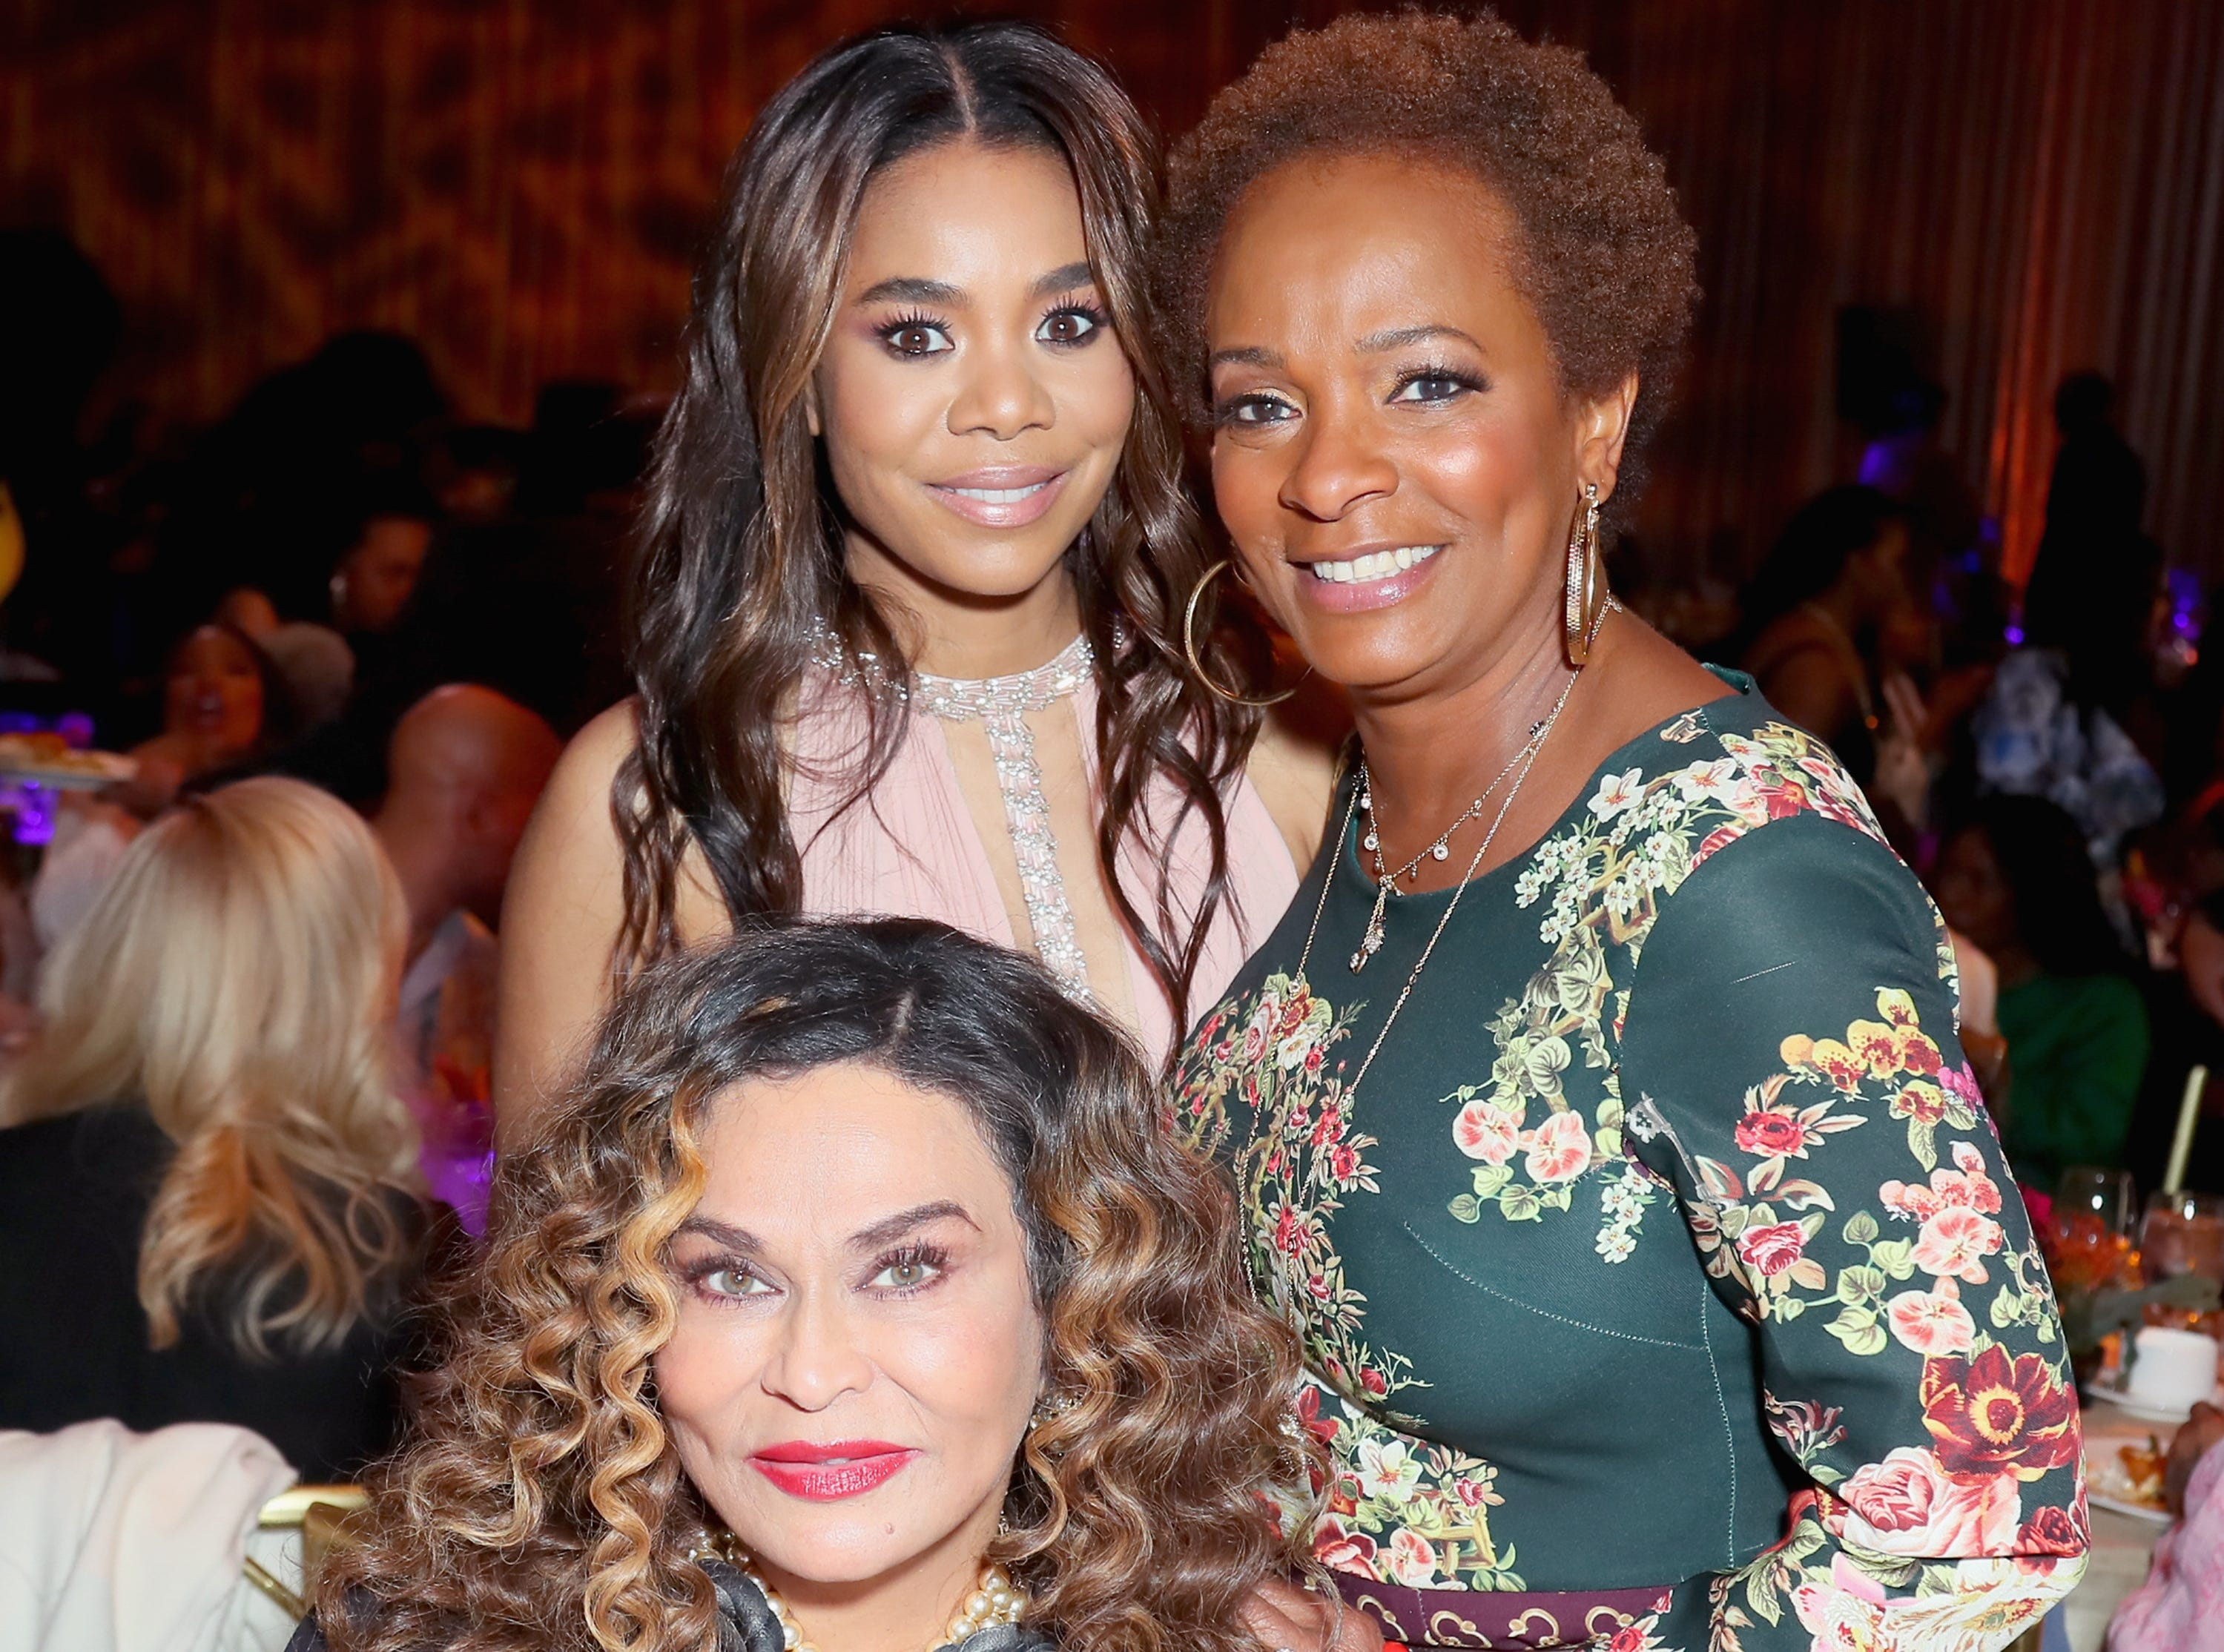 BEVERLY HILLS, CA - FEBRUARY 21:  (L-R) Tina Knowles Lawson, Regina Hall and Vanessa Bell Calloway attend the 2019 Essence Black Women in Hollywood Awards Luncheon at Regent Beverly Wilshire Hotel on February 21, 2019 in Los Angeles, California.  (Photo by Leon Bennett/Getty Images for Essence) ORG XMIT: 775299567 ORIG FILE ID: 1126612194